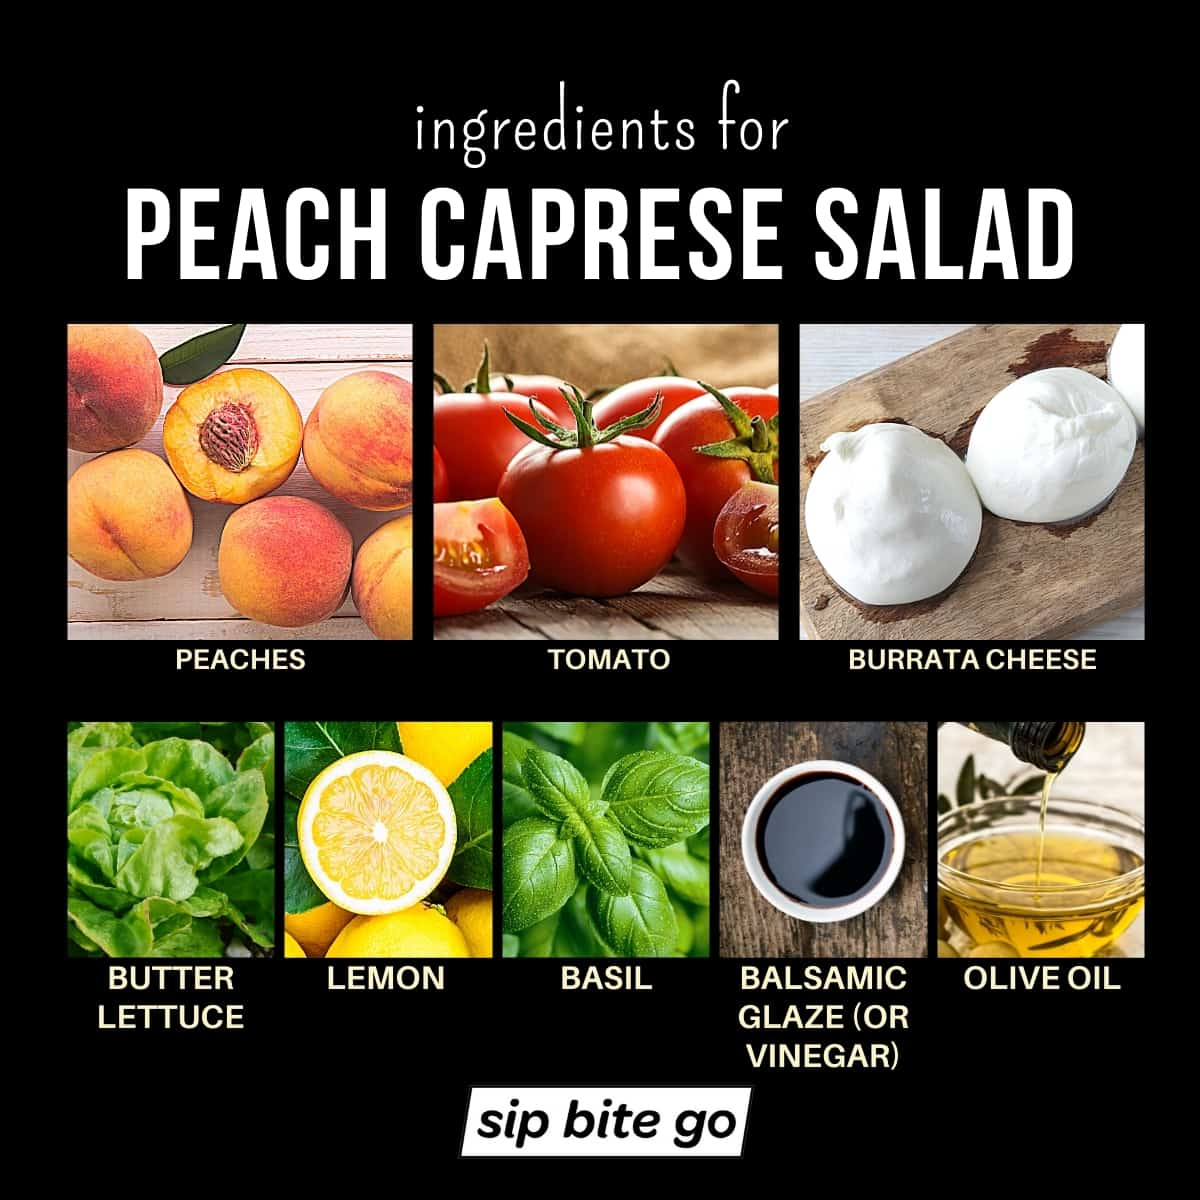 Infographic chart with captions and ingredients for Peach Caprese Salad with fresh peaches and burrata cheese and tomatoes.